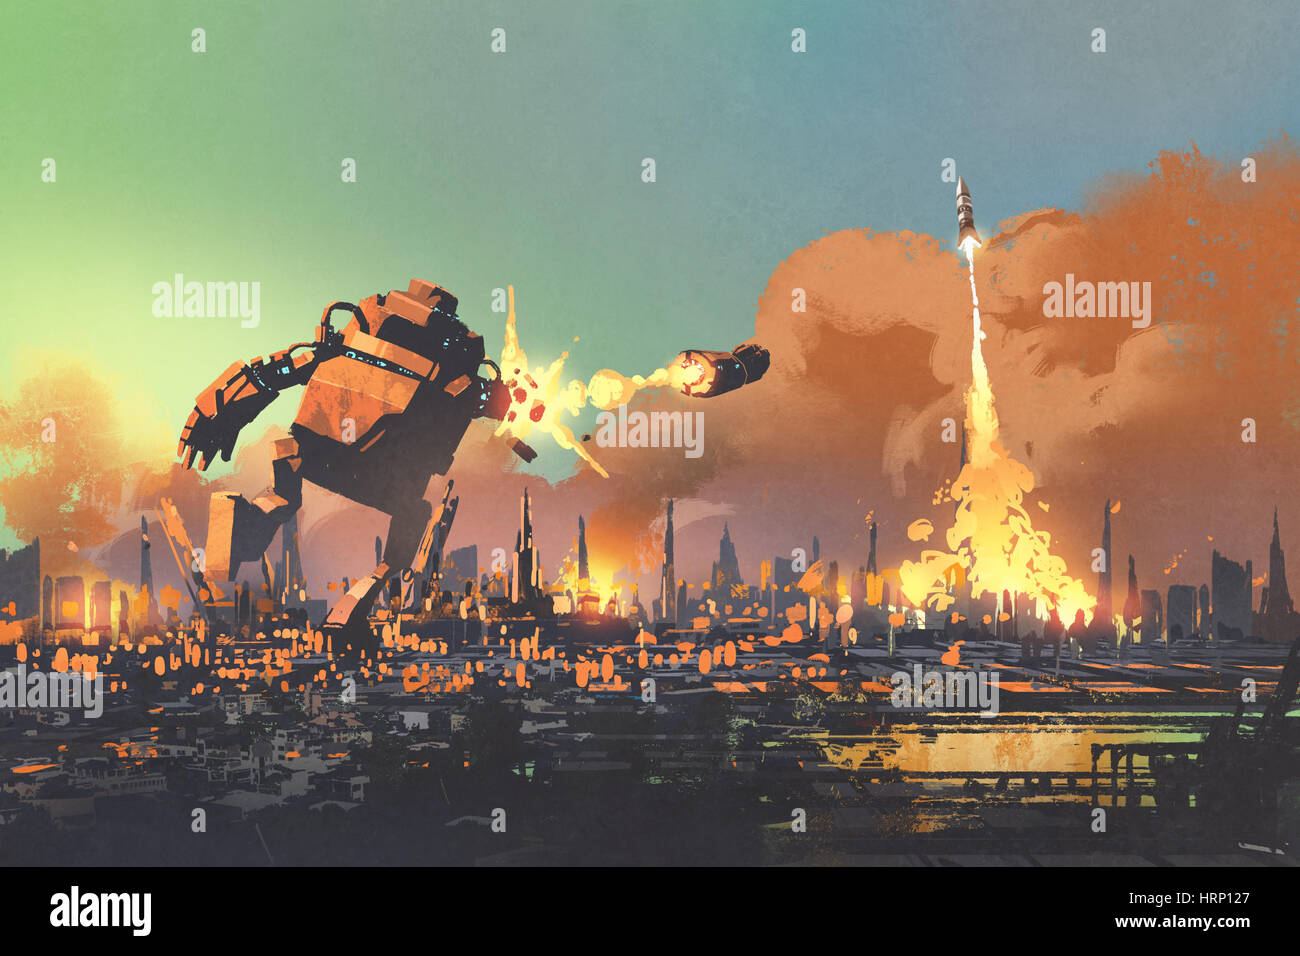 the giant robot launching rocket punch destroy the city,illustration painting - Stock Image